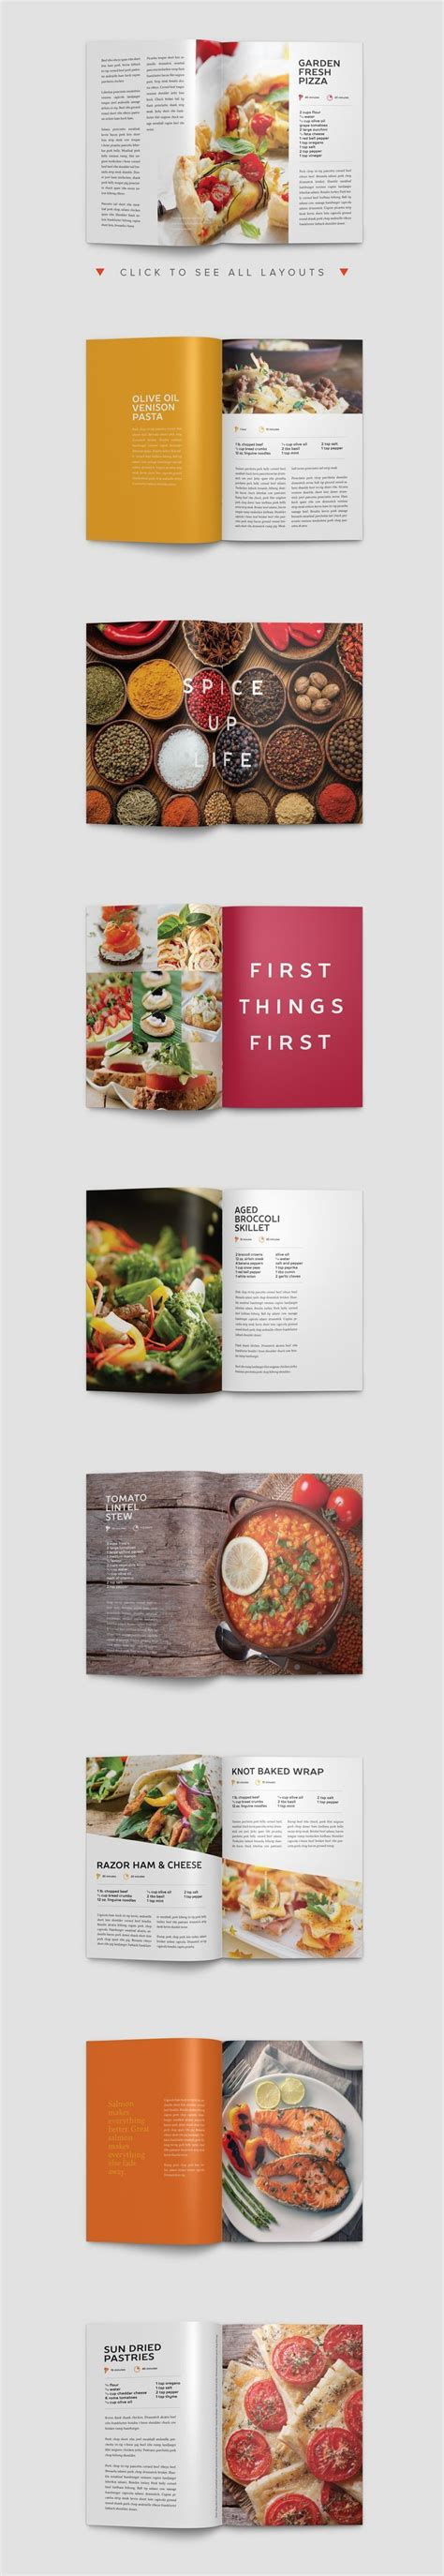 template indesign livre modern cookbook indesign template by prixel creative on